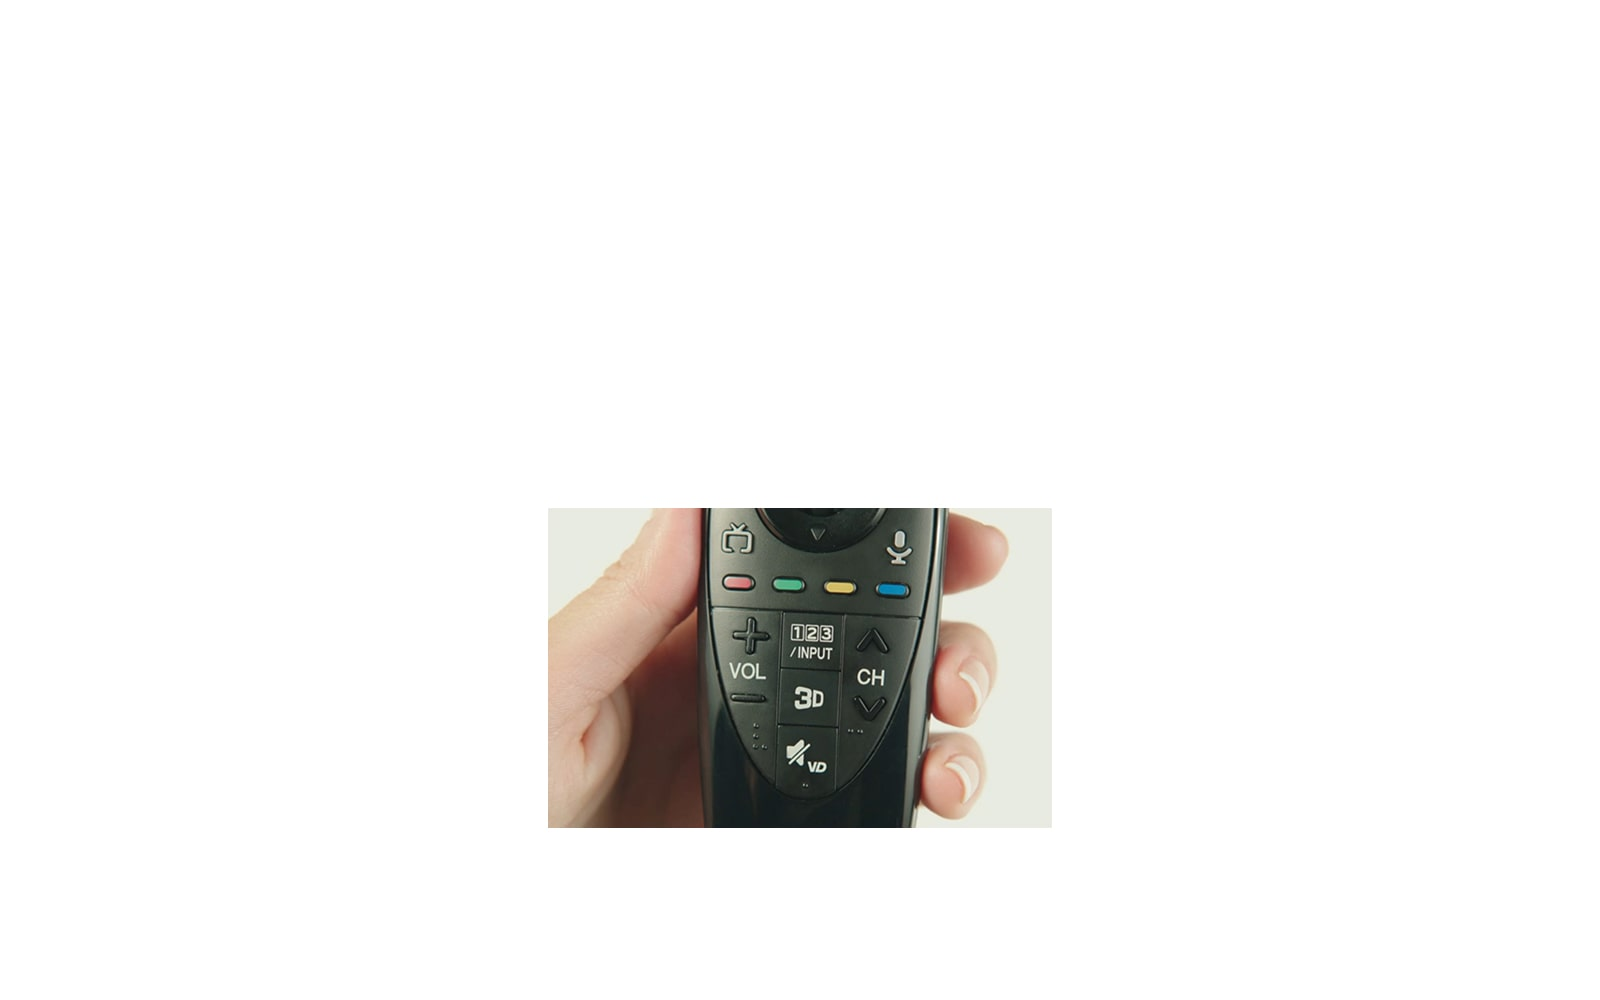 Magic Remote Control with Voice Mate™ for SELECT 2014 Smart TVs